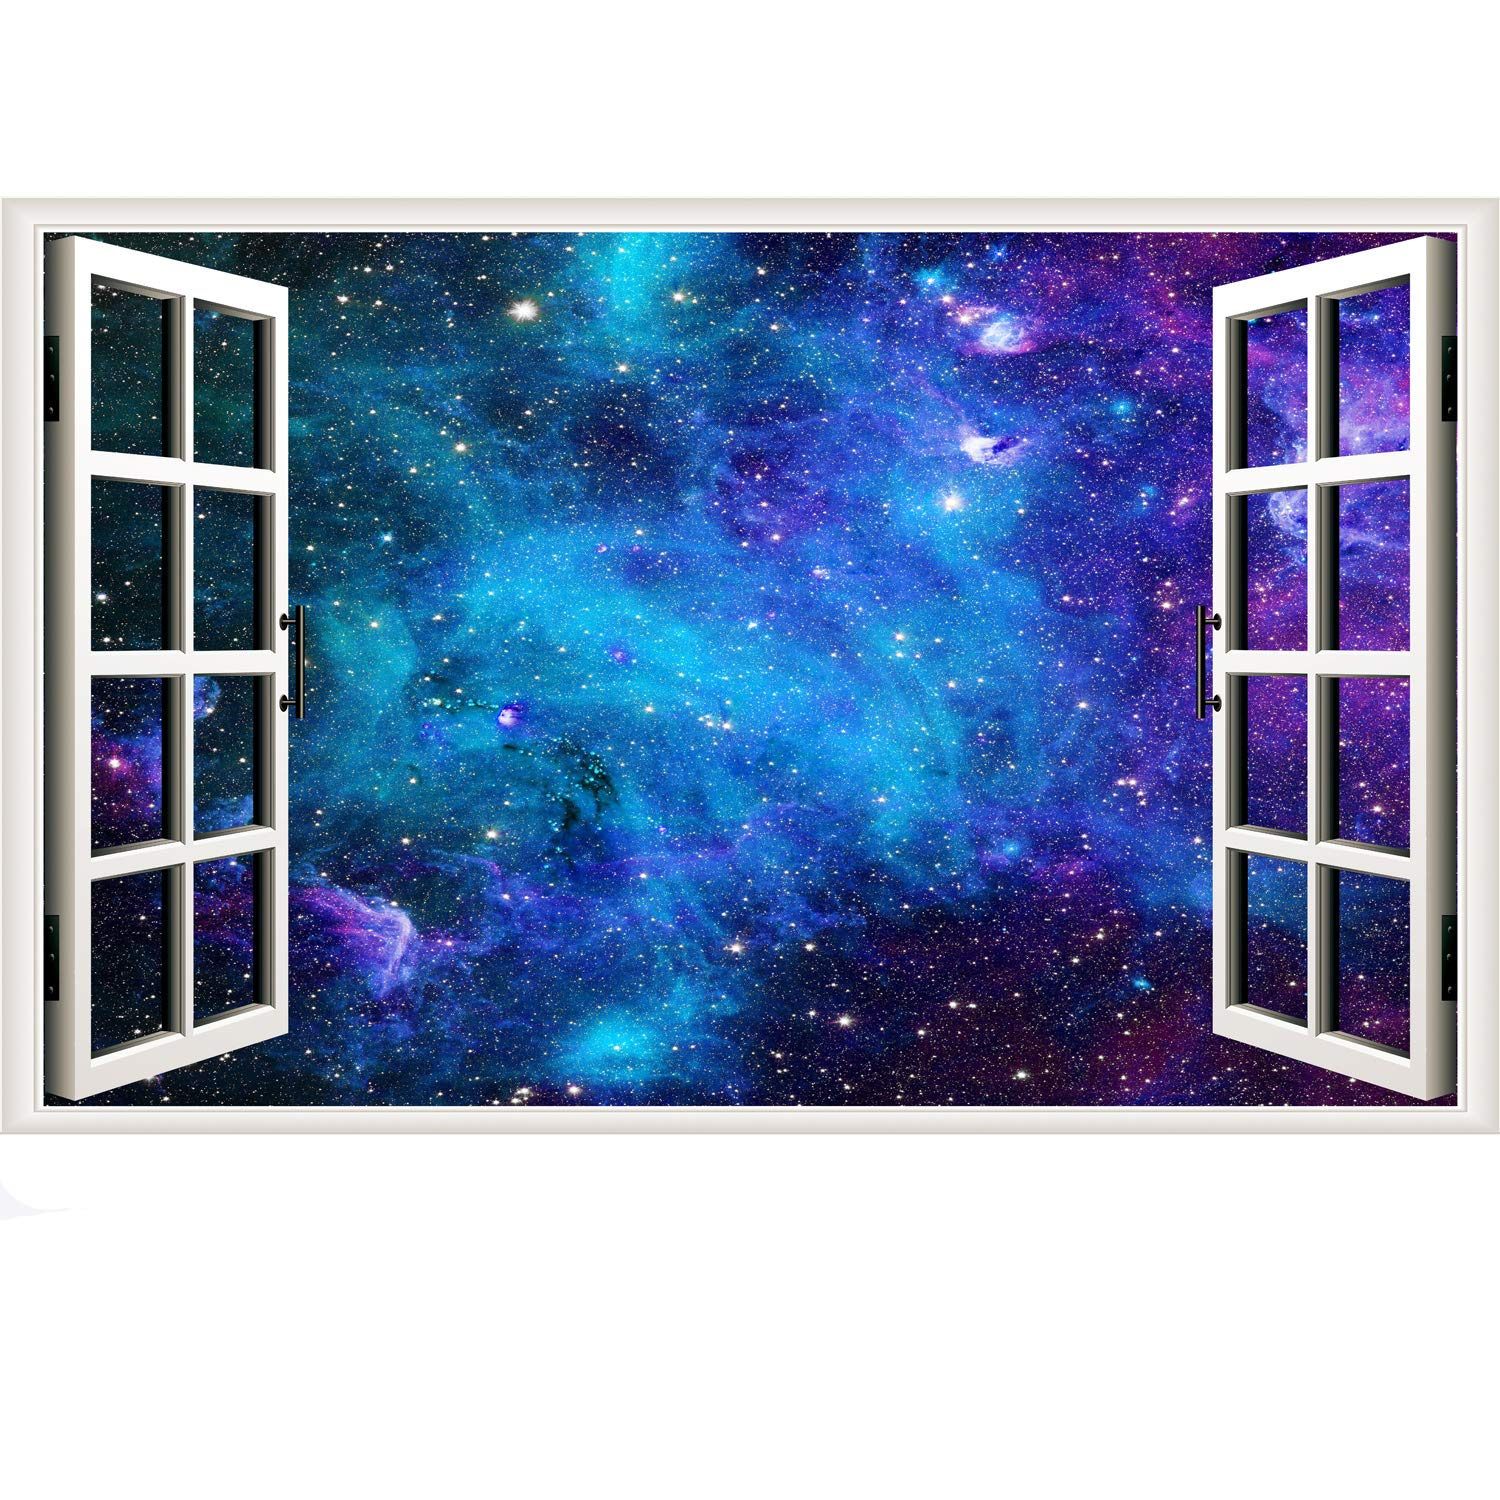 Galaxy Wall Sticker 3D Cosmic Stars Fake Window Wall Decal Blue Space Window View Stickers Milky Way Removable Wall Decals for Bedroom Office